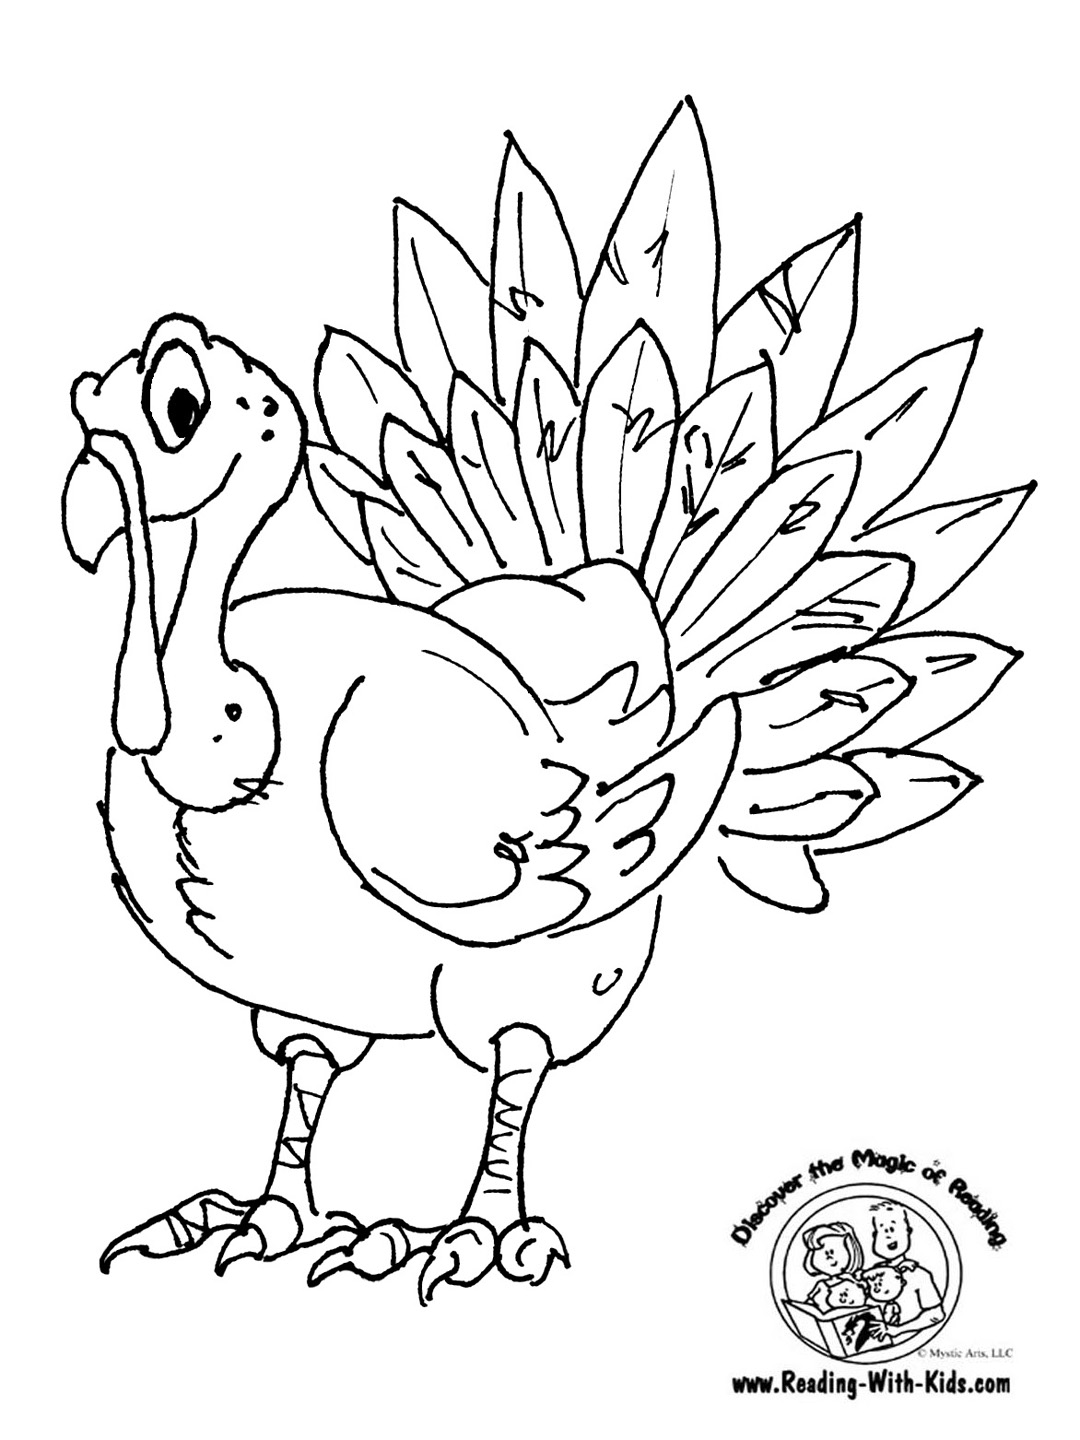 thanksgiving turkey coloring page - Coloring Pages That You Can Color